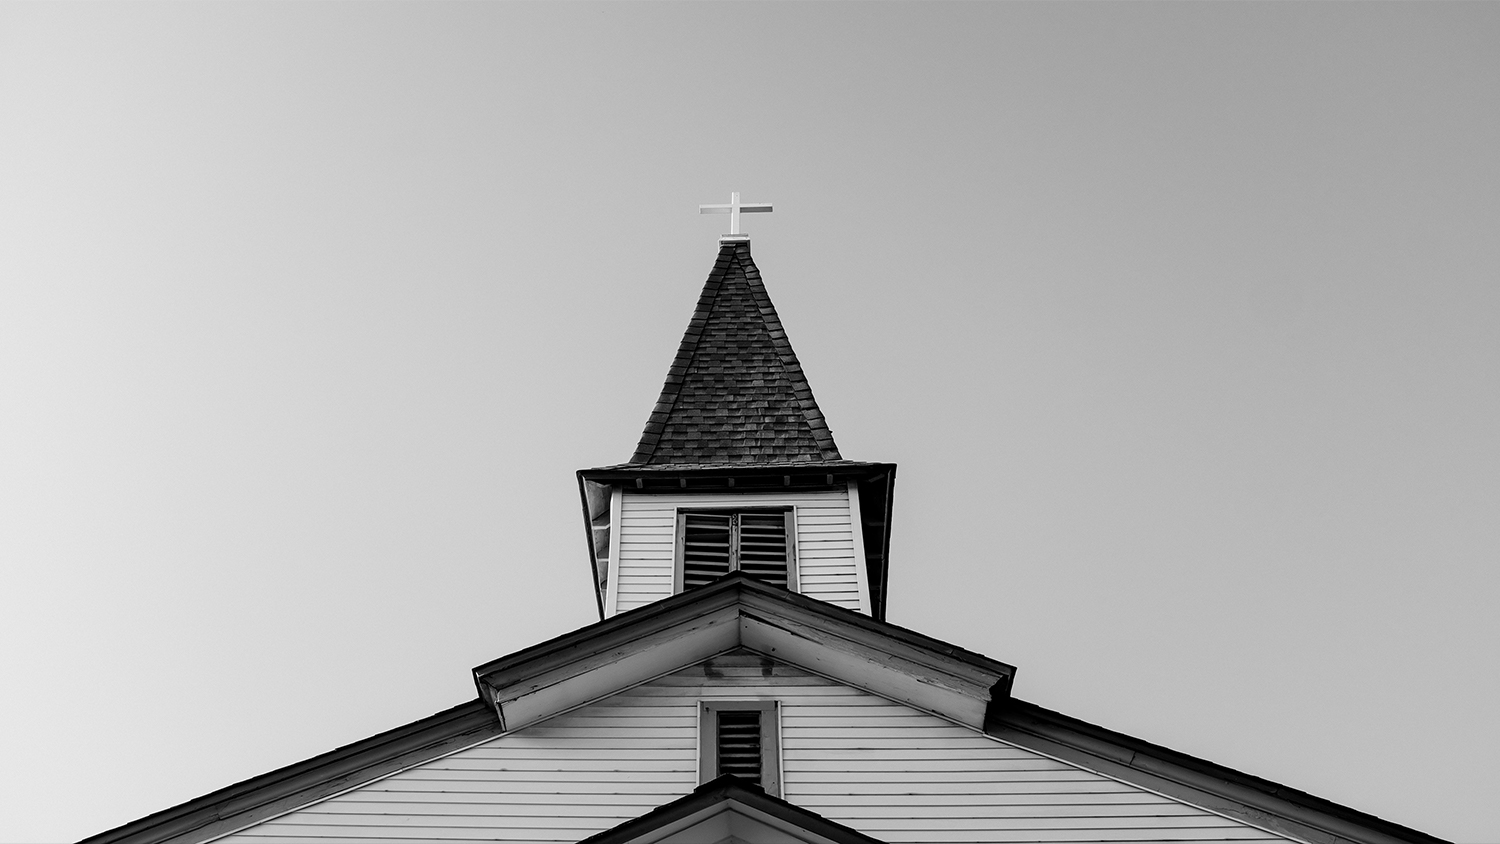 churchblackandwhite-blog-090419